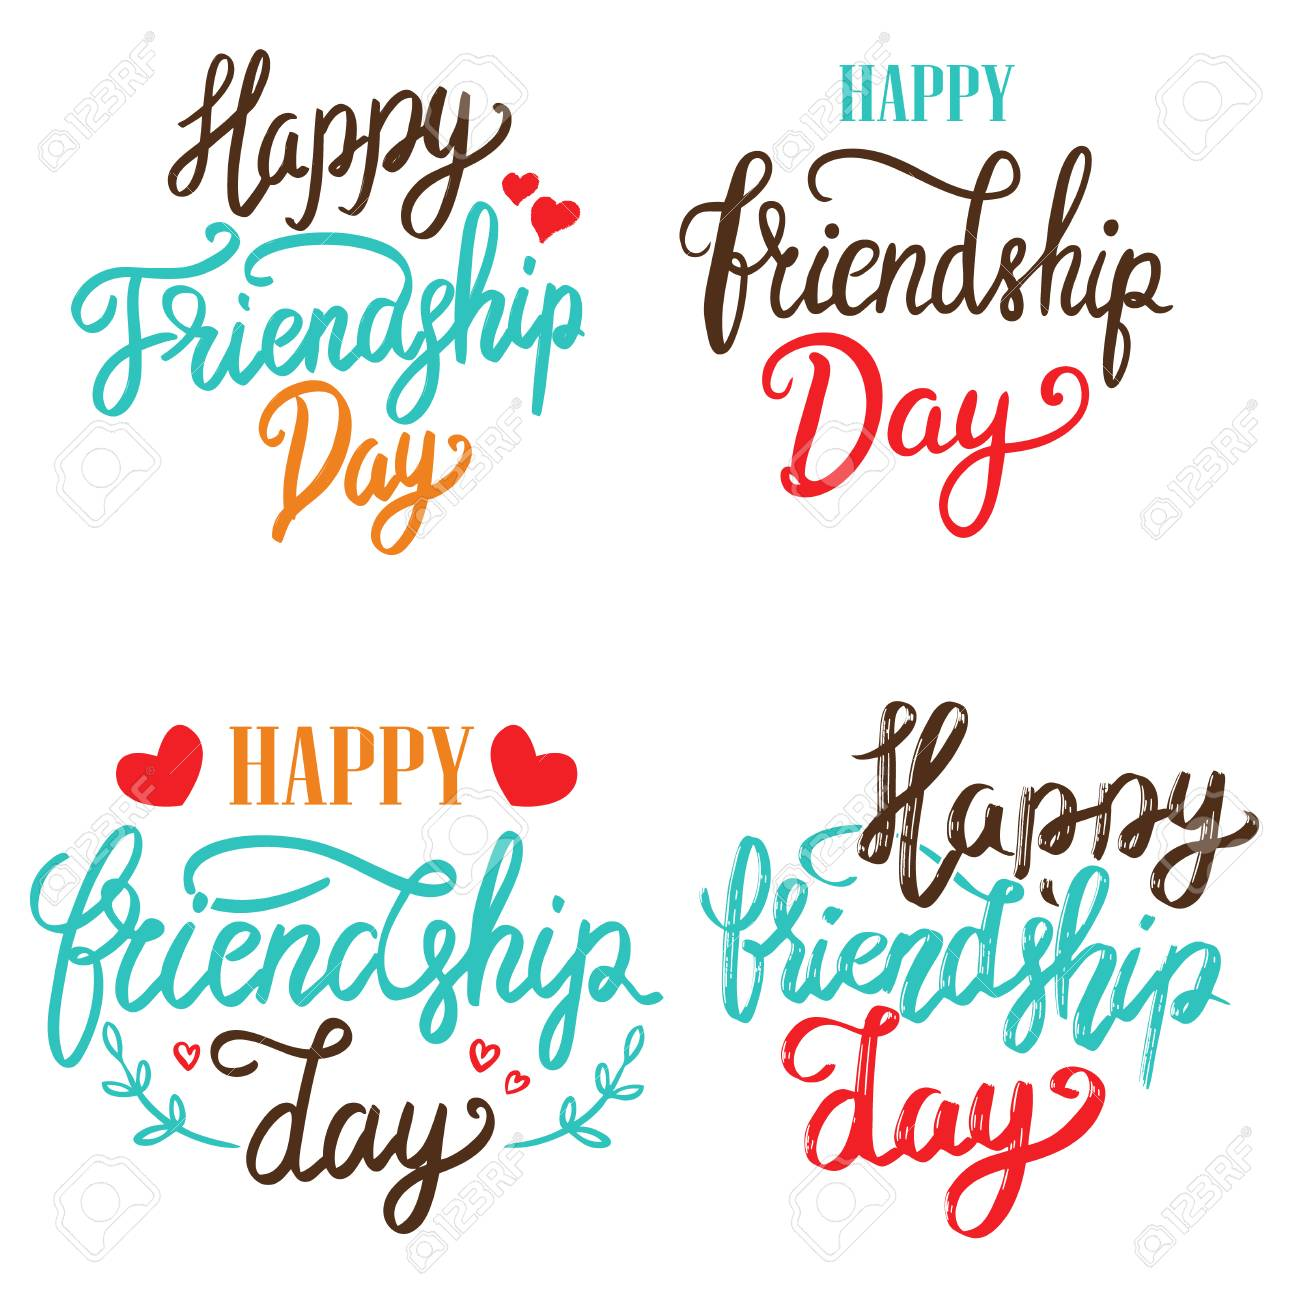 Happy Friendship Day Set Of Hand Drawn Lettering Phrases On White Background Design Element